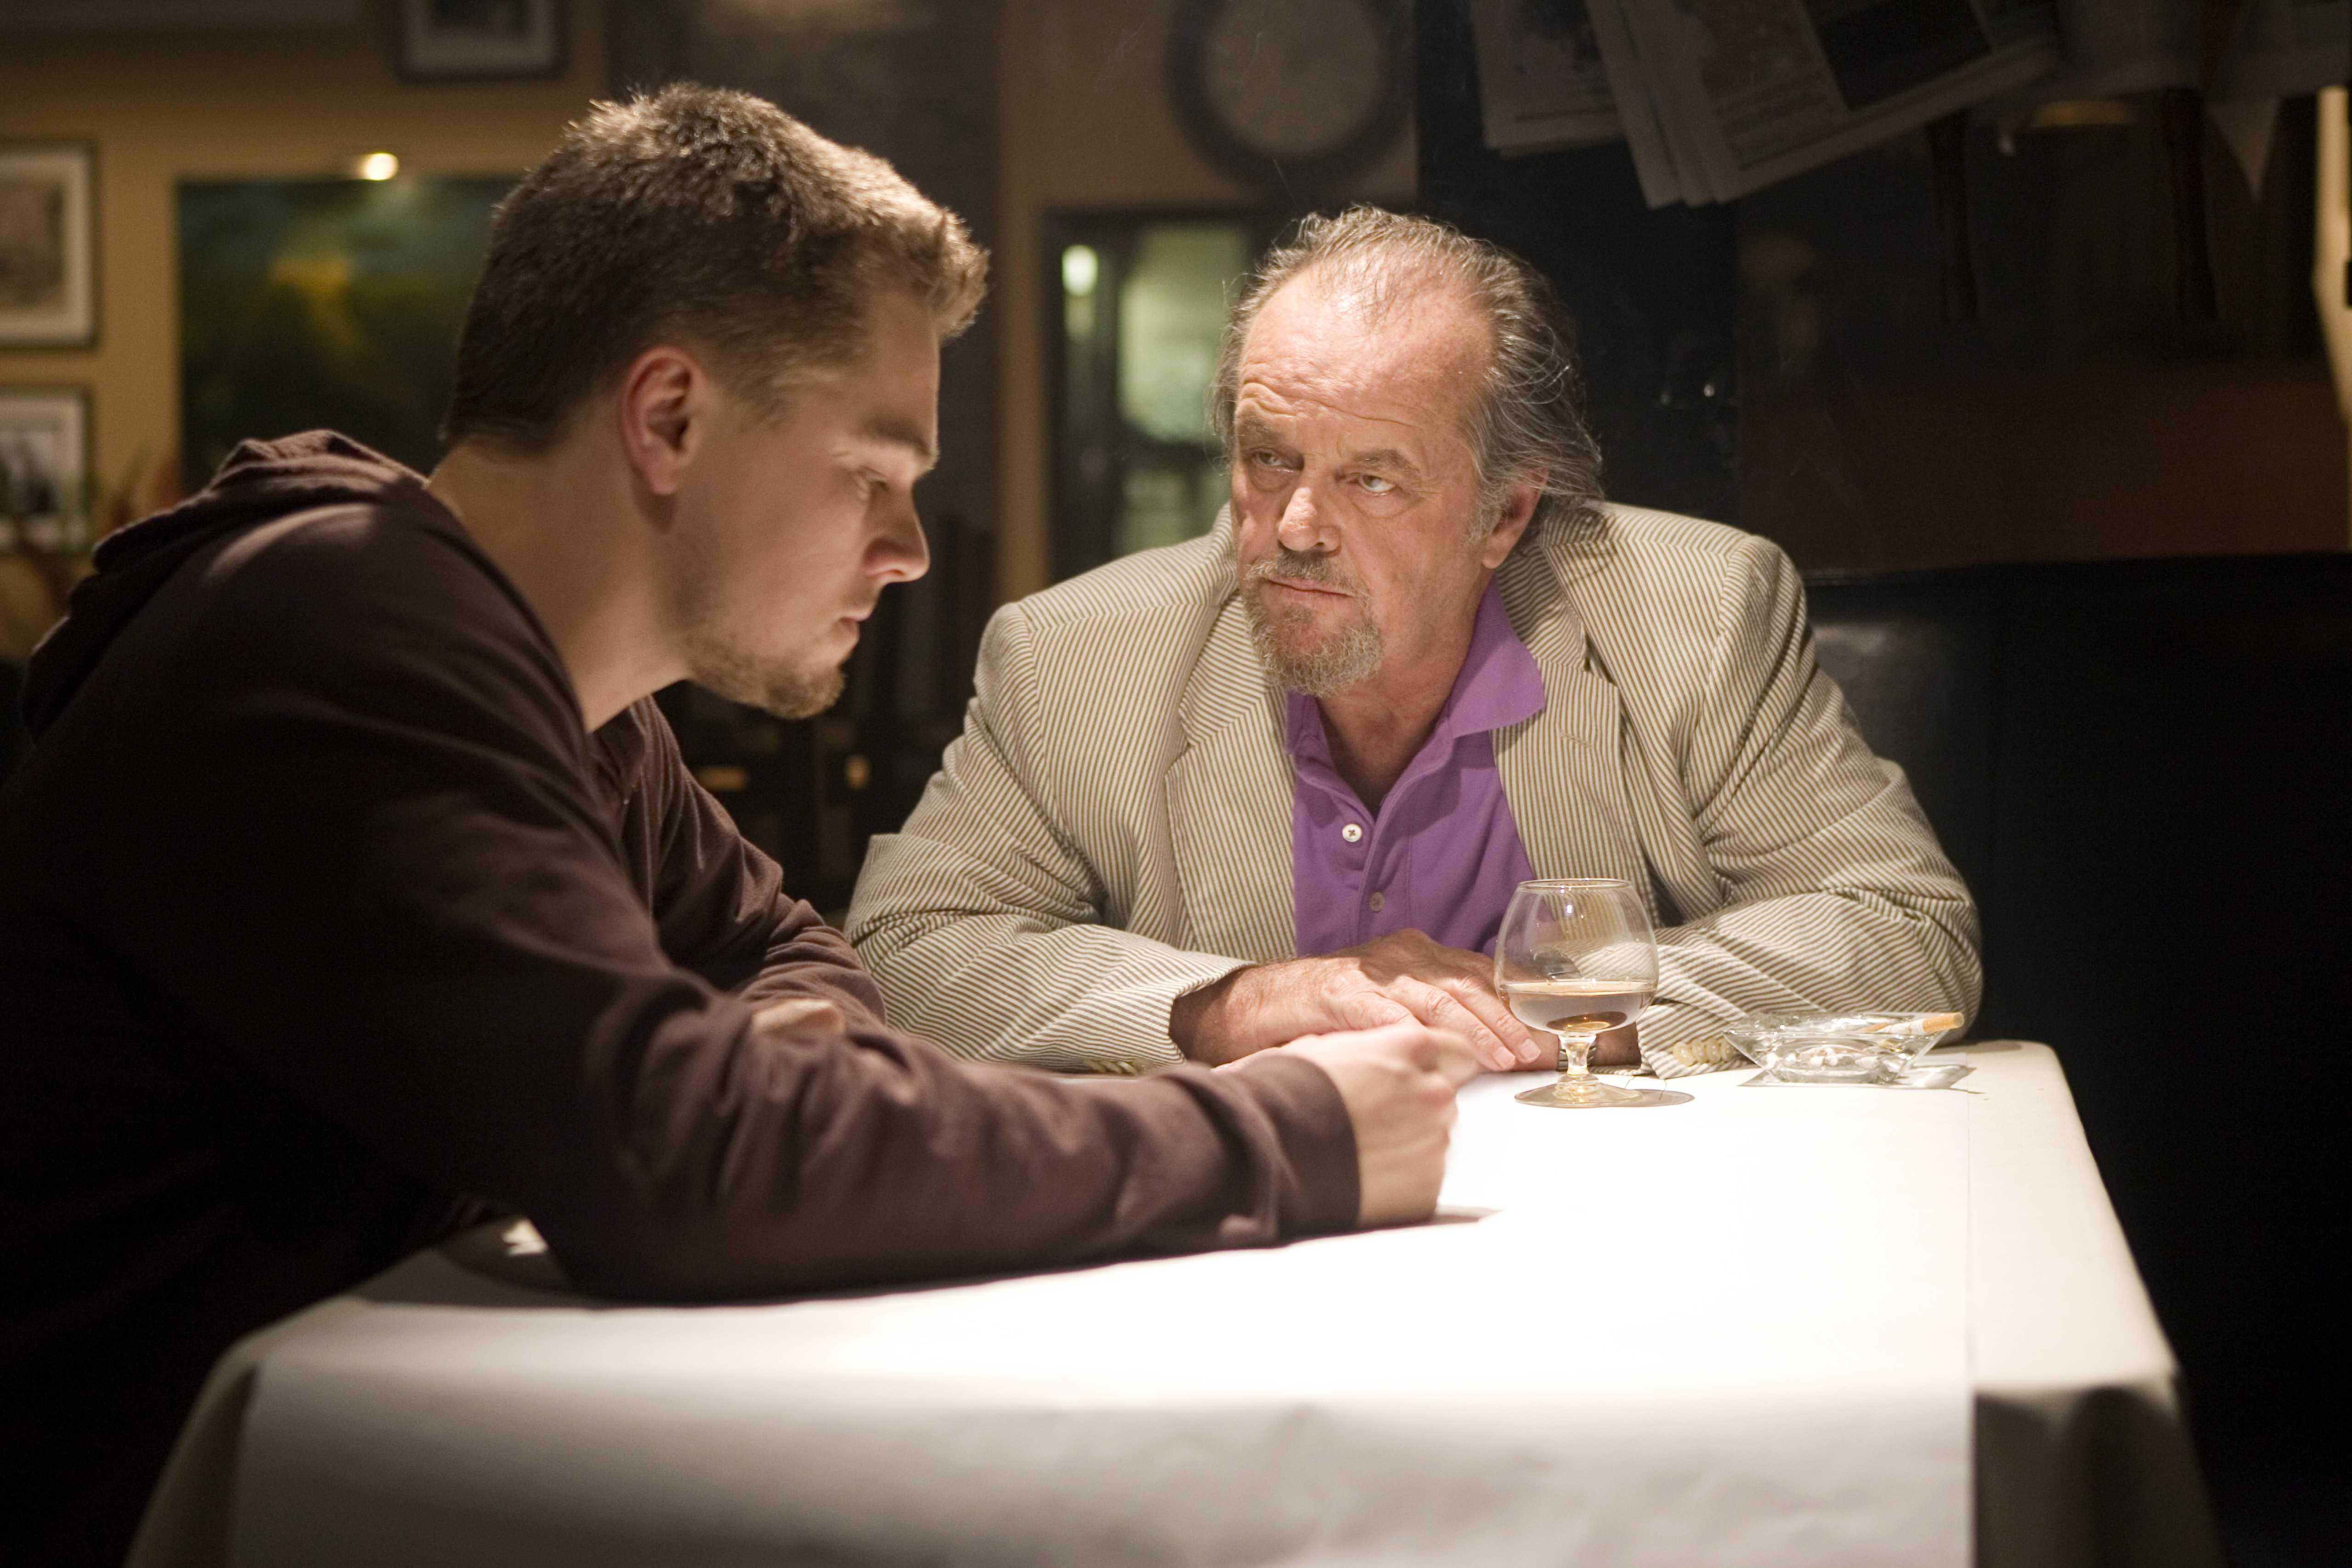 'The Departed' TV Series Based On Oscar-Winning Movie In Works At Amazon